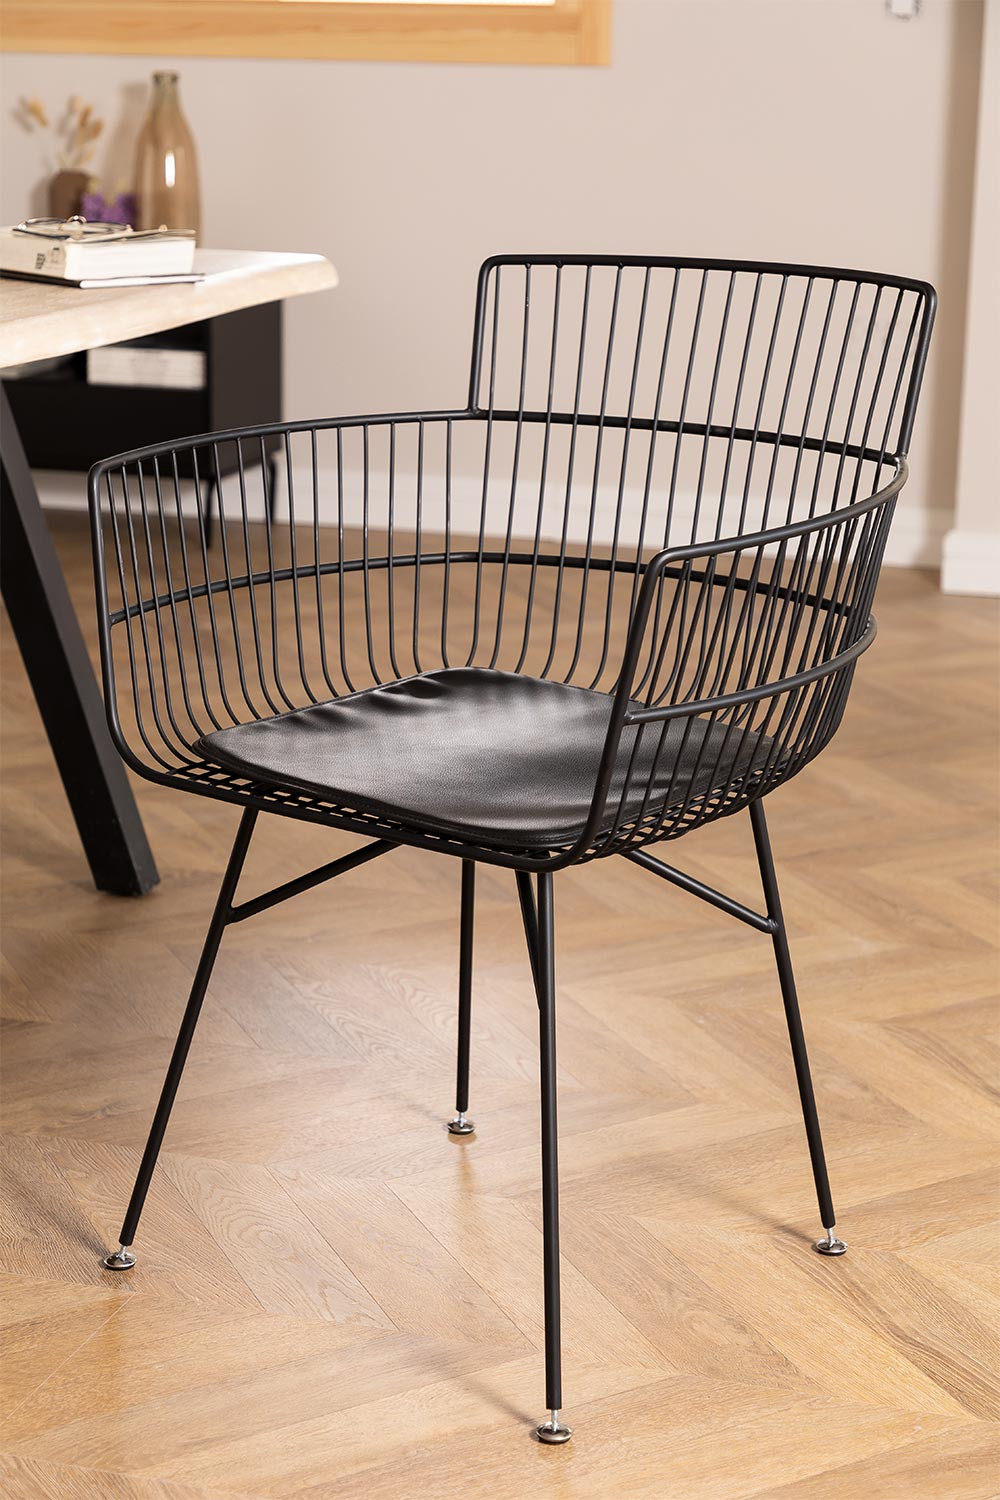 Metal Chair with Cuadry Armrests, gallery image 1